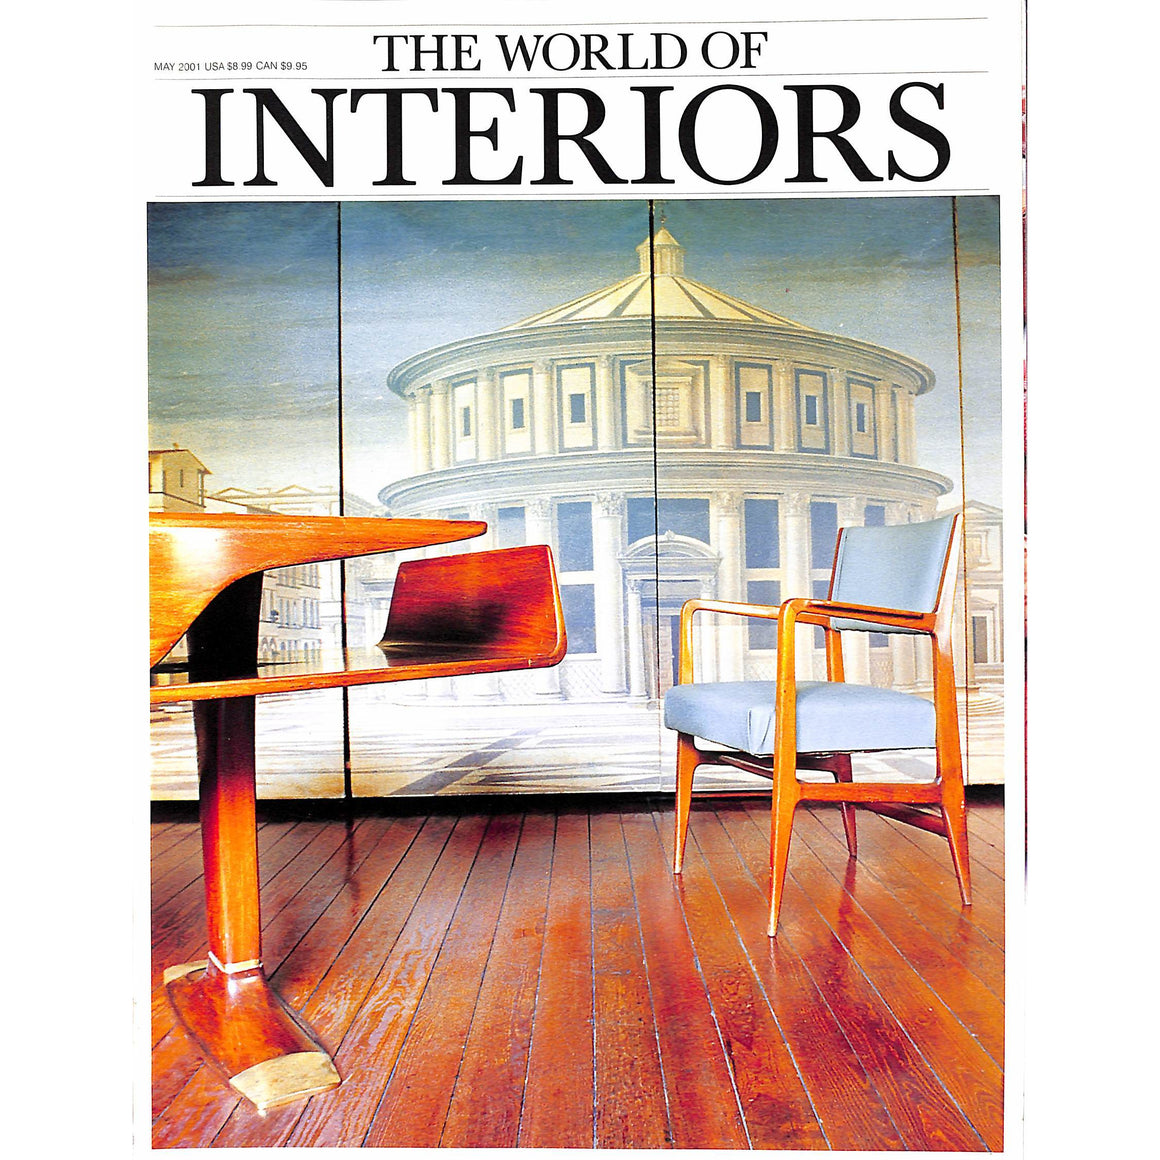 The World of Interiors May 2001